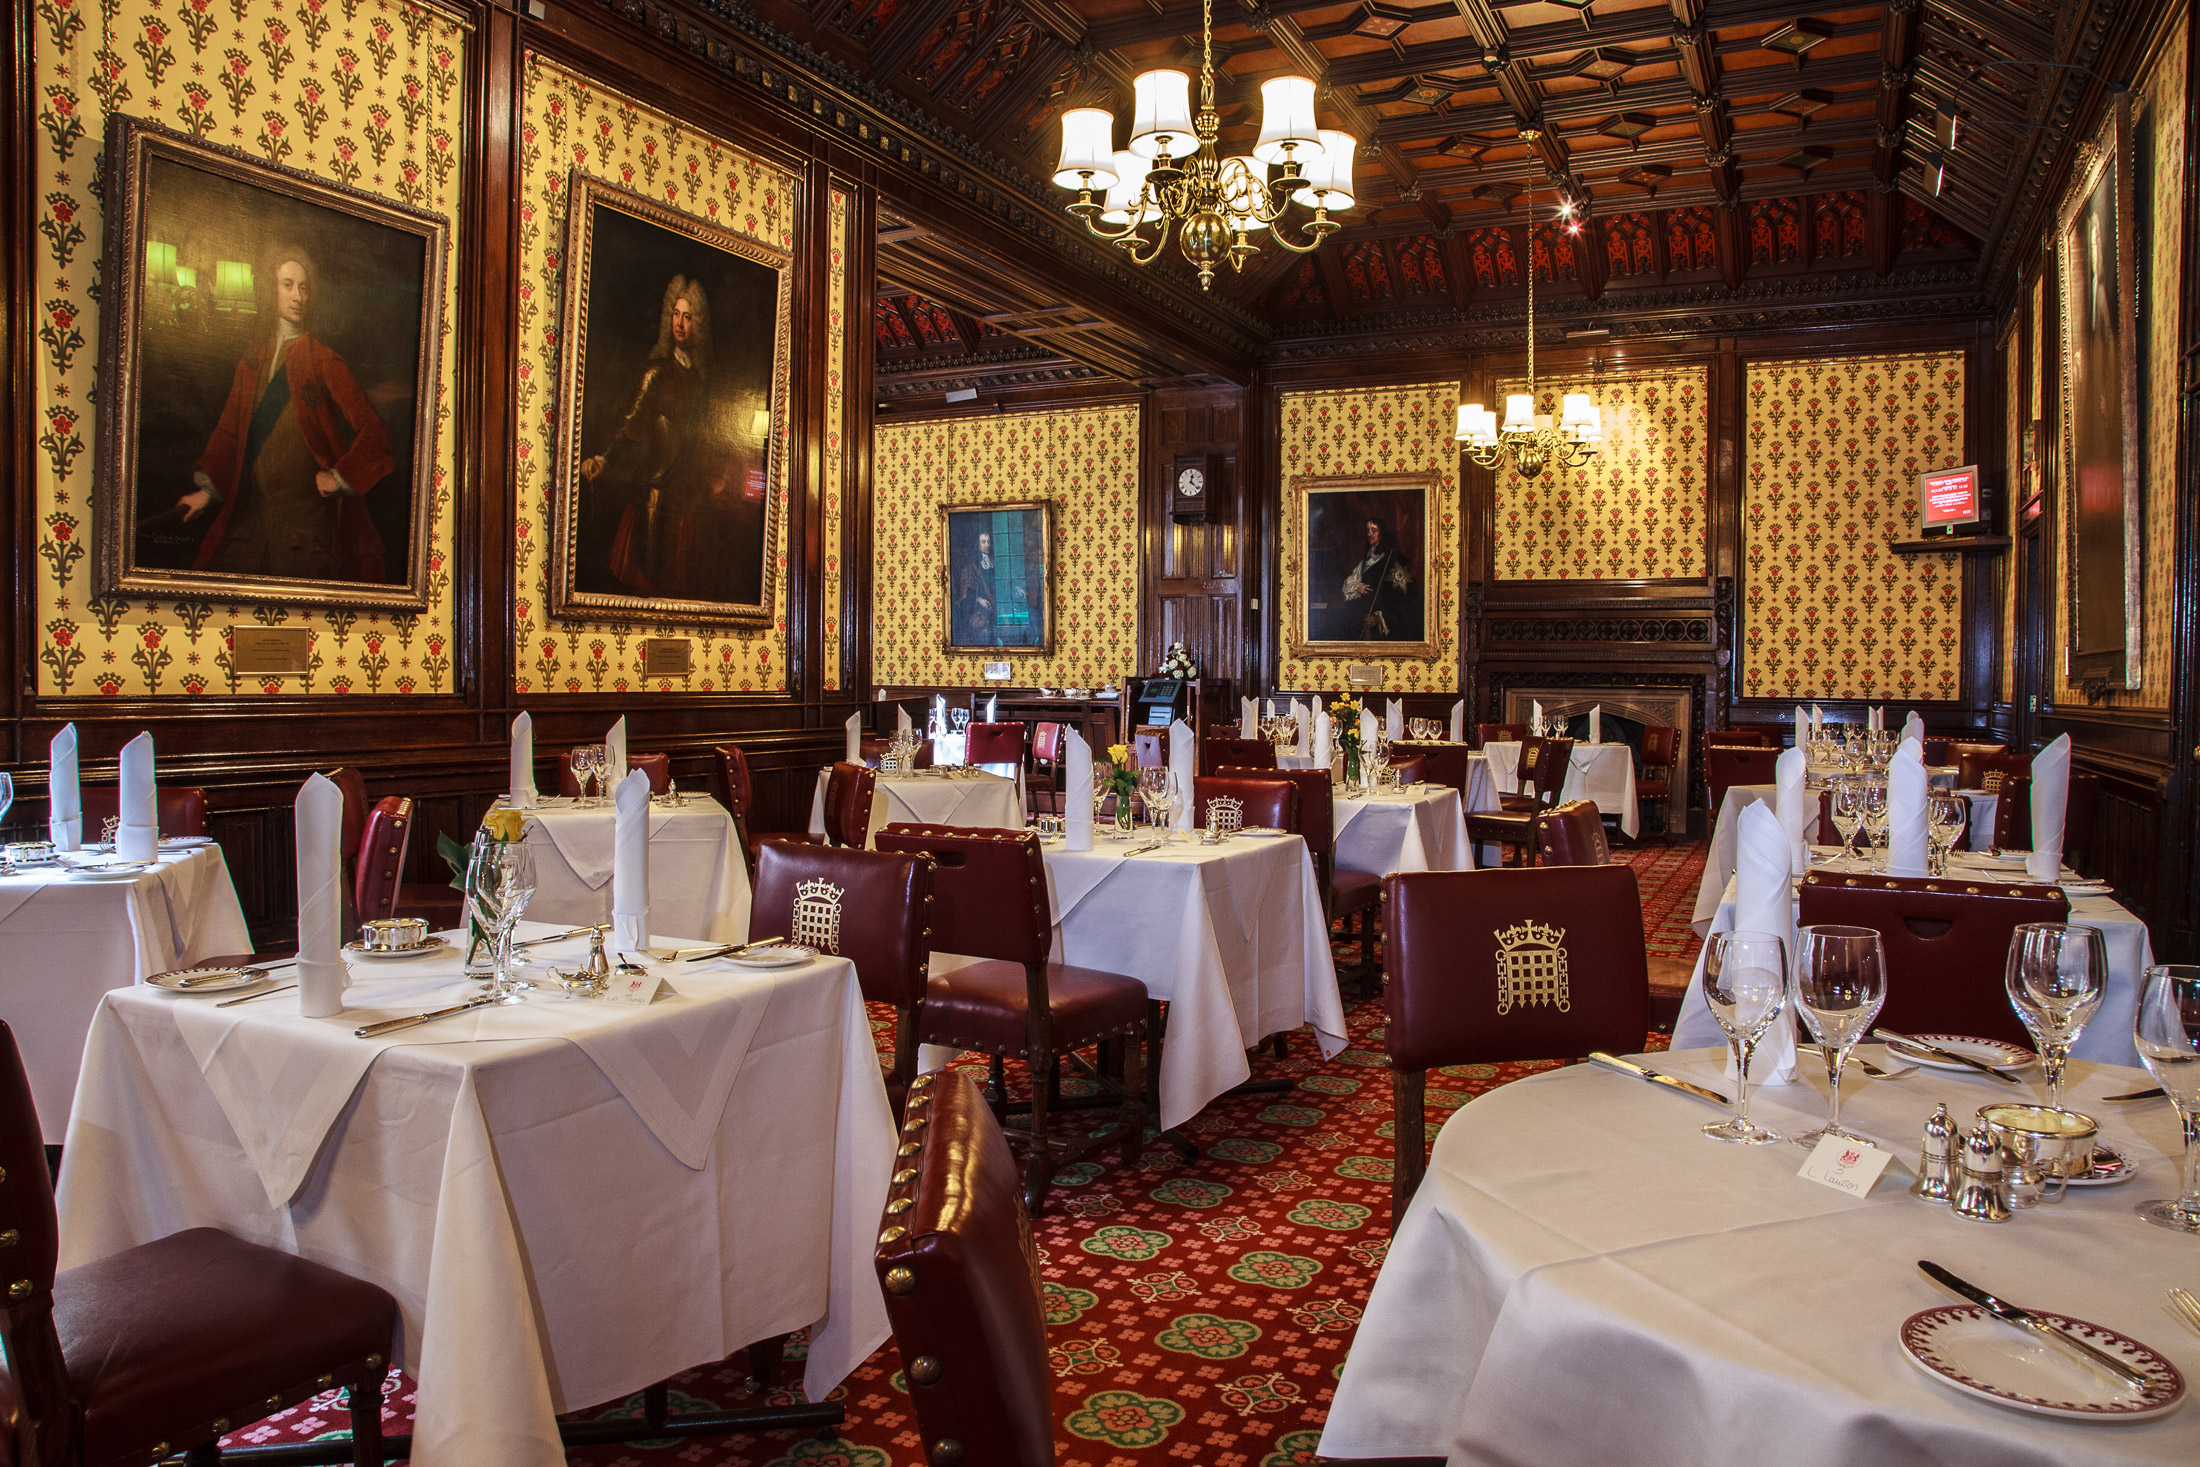 Heres What Its Like To Eat In The House Of Lords Exclusive Parliament Dining Room